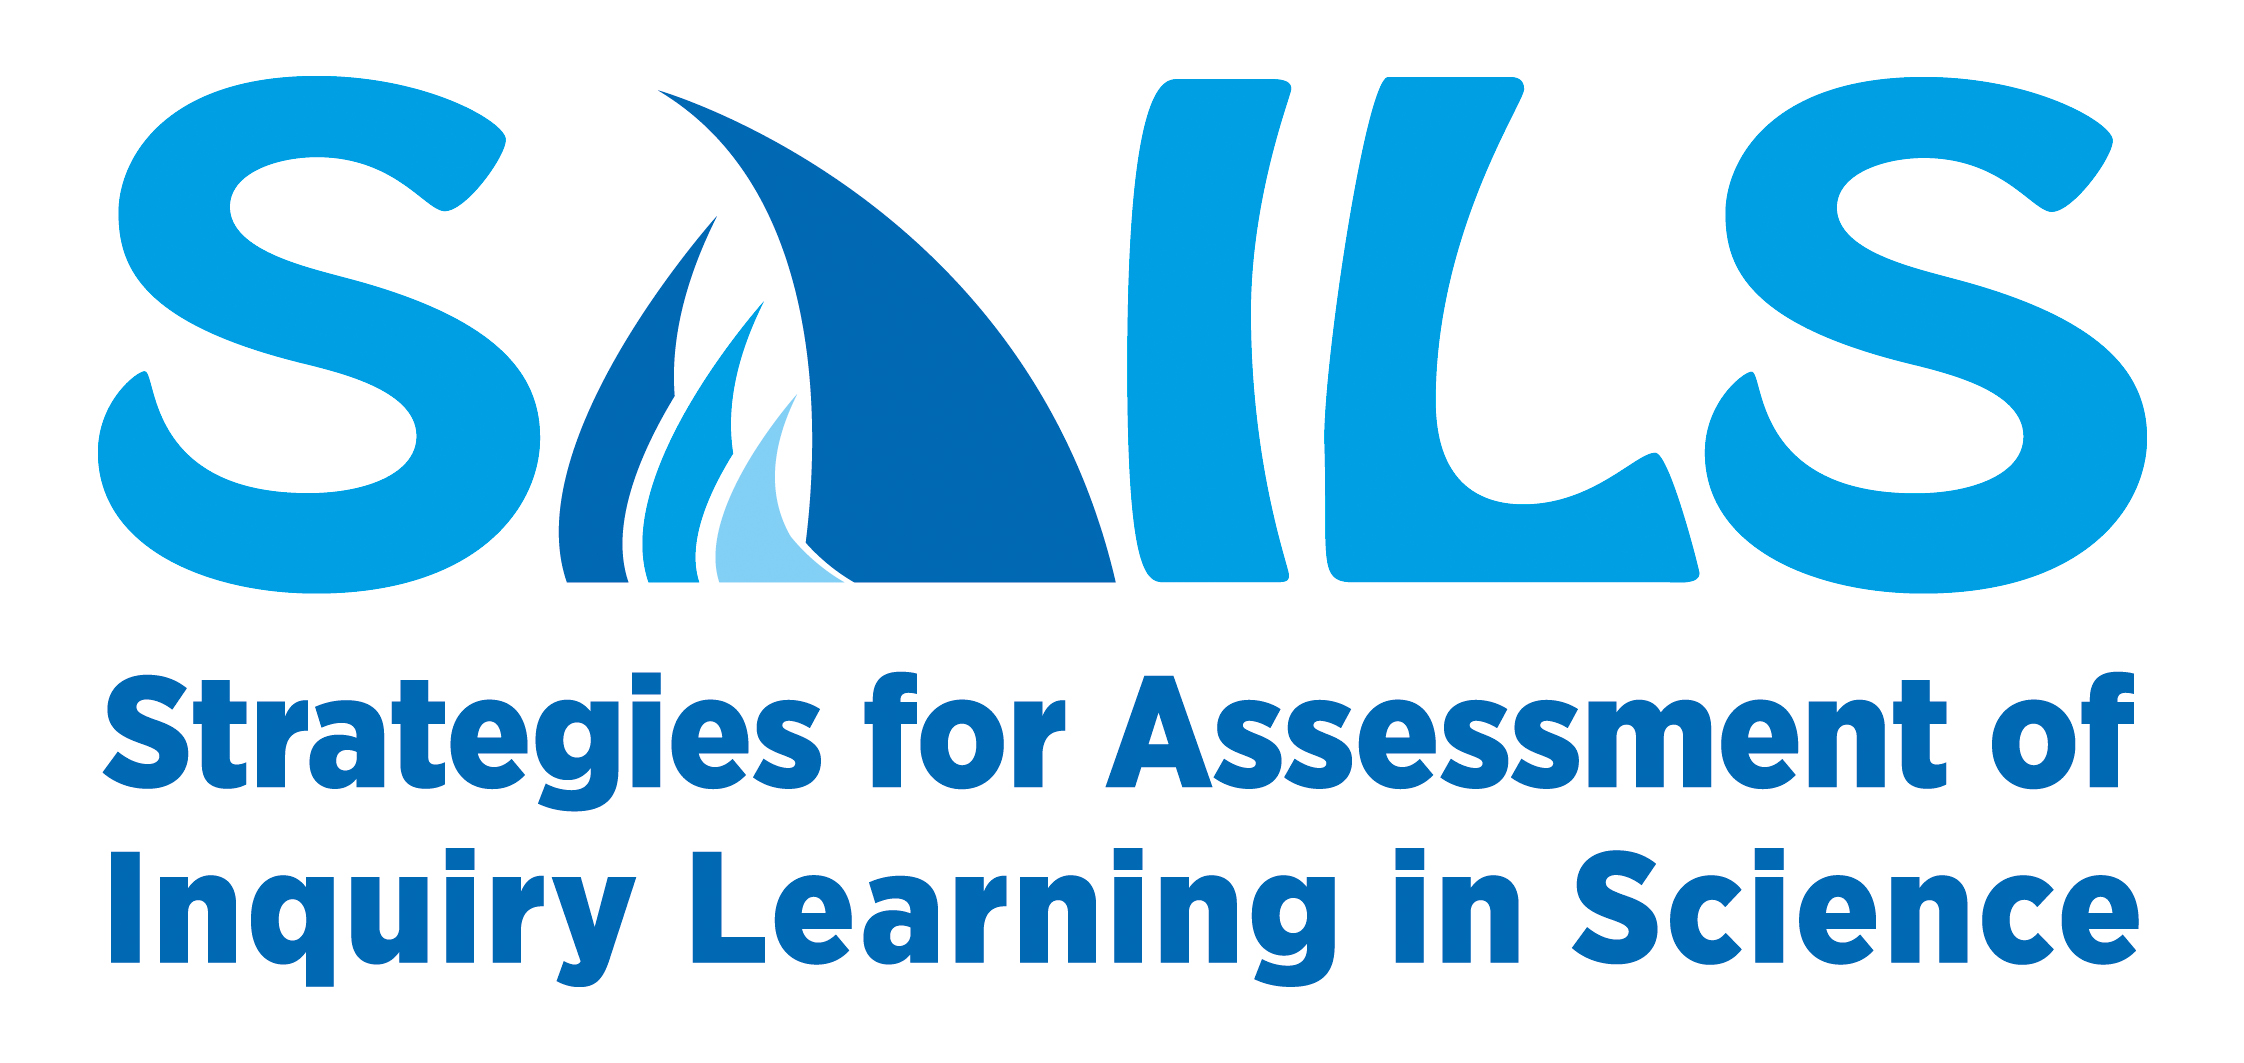 SAILS: Strategies for the Assessment of Inquiry Learning in Science